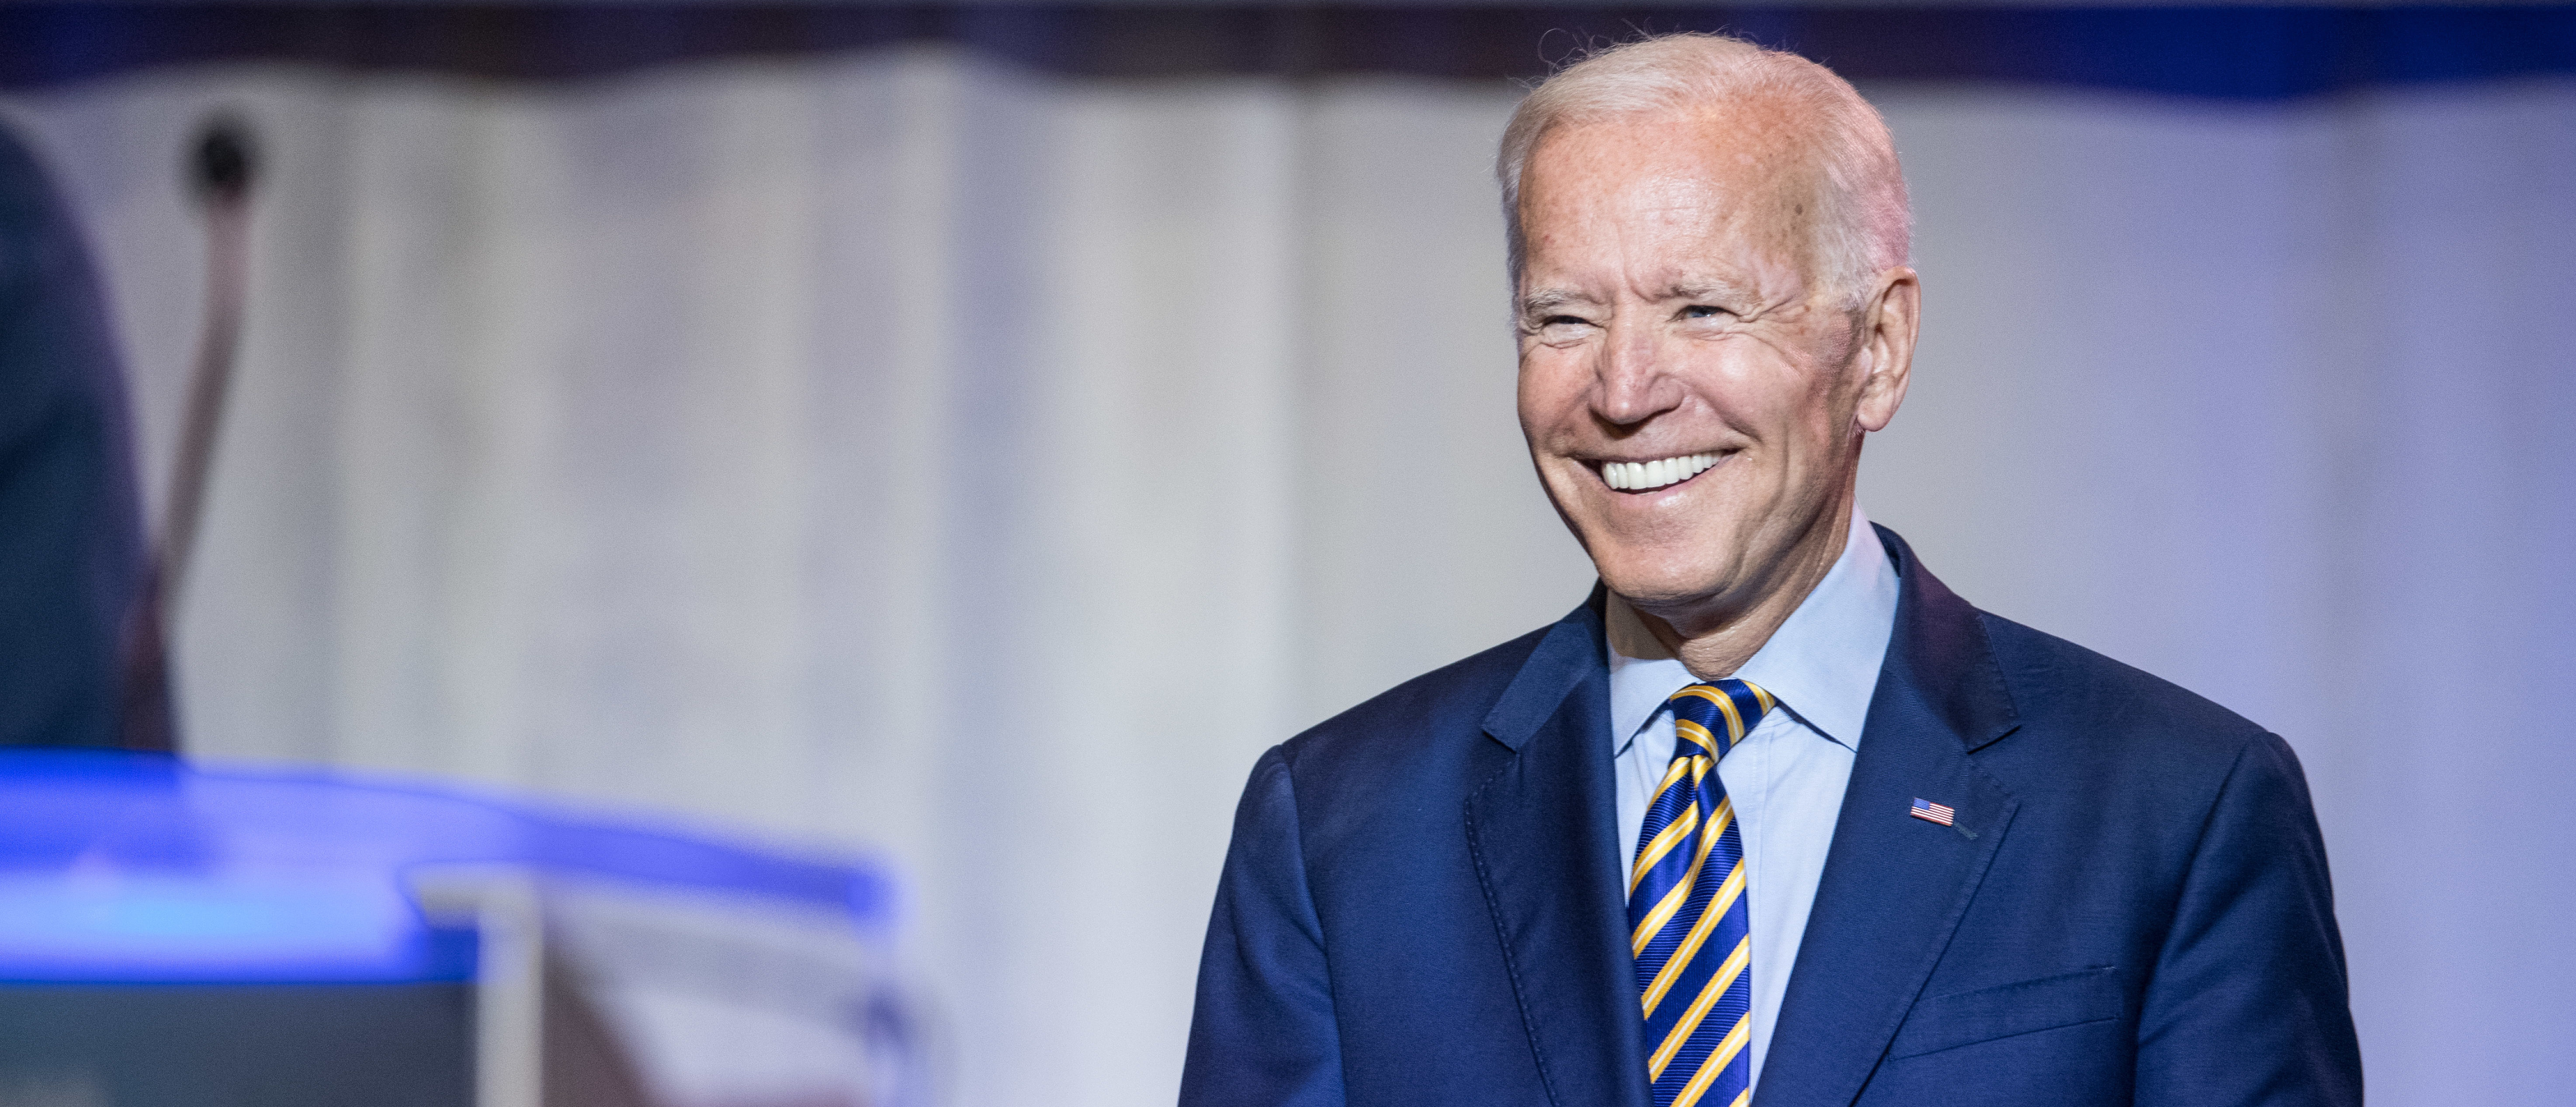 COLUMBIA, SC - JUNE 22: Democratic presidential candidate, former Vice President Joe Biden is introduced to the crowd during the 2019 South Carolina Democratic Party State Convention on June 22, 2019 in Columbia, South Carolina. Democratic presidential hopefuls are converging on South Carolina this weekend for a host of events where the candidates can directly address an important voting bloc in the Democratic primary. (Photo by Sean Rayford/Getty Images)